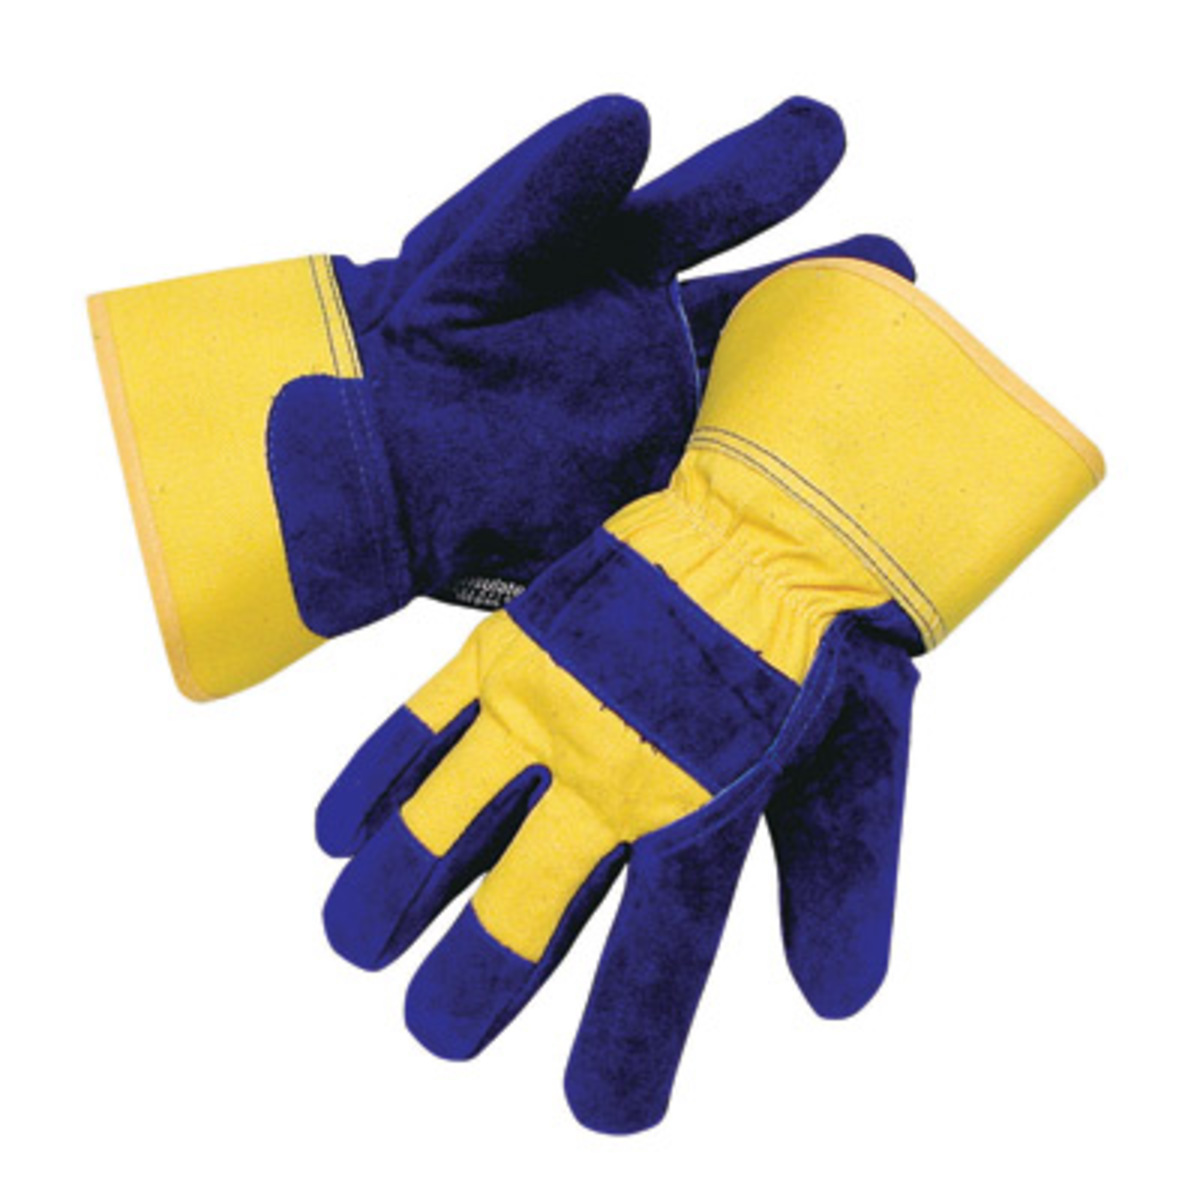 Leather work gloves with thinsulate lining - Radnor Large Blue And Yellow Canvas And Leather Thinsulate Lined Cold Weather Gloves